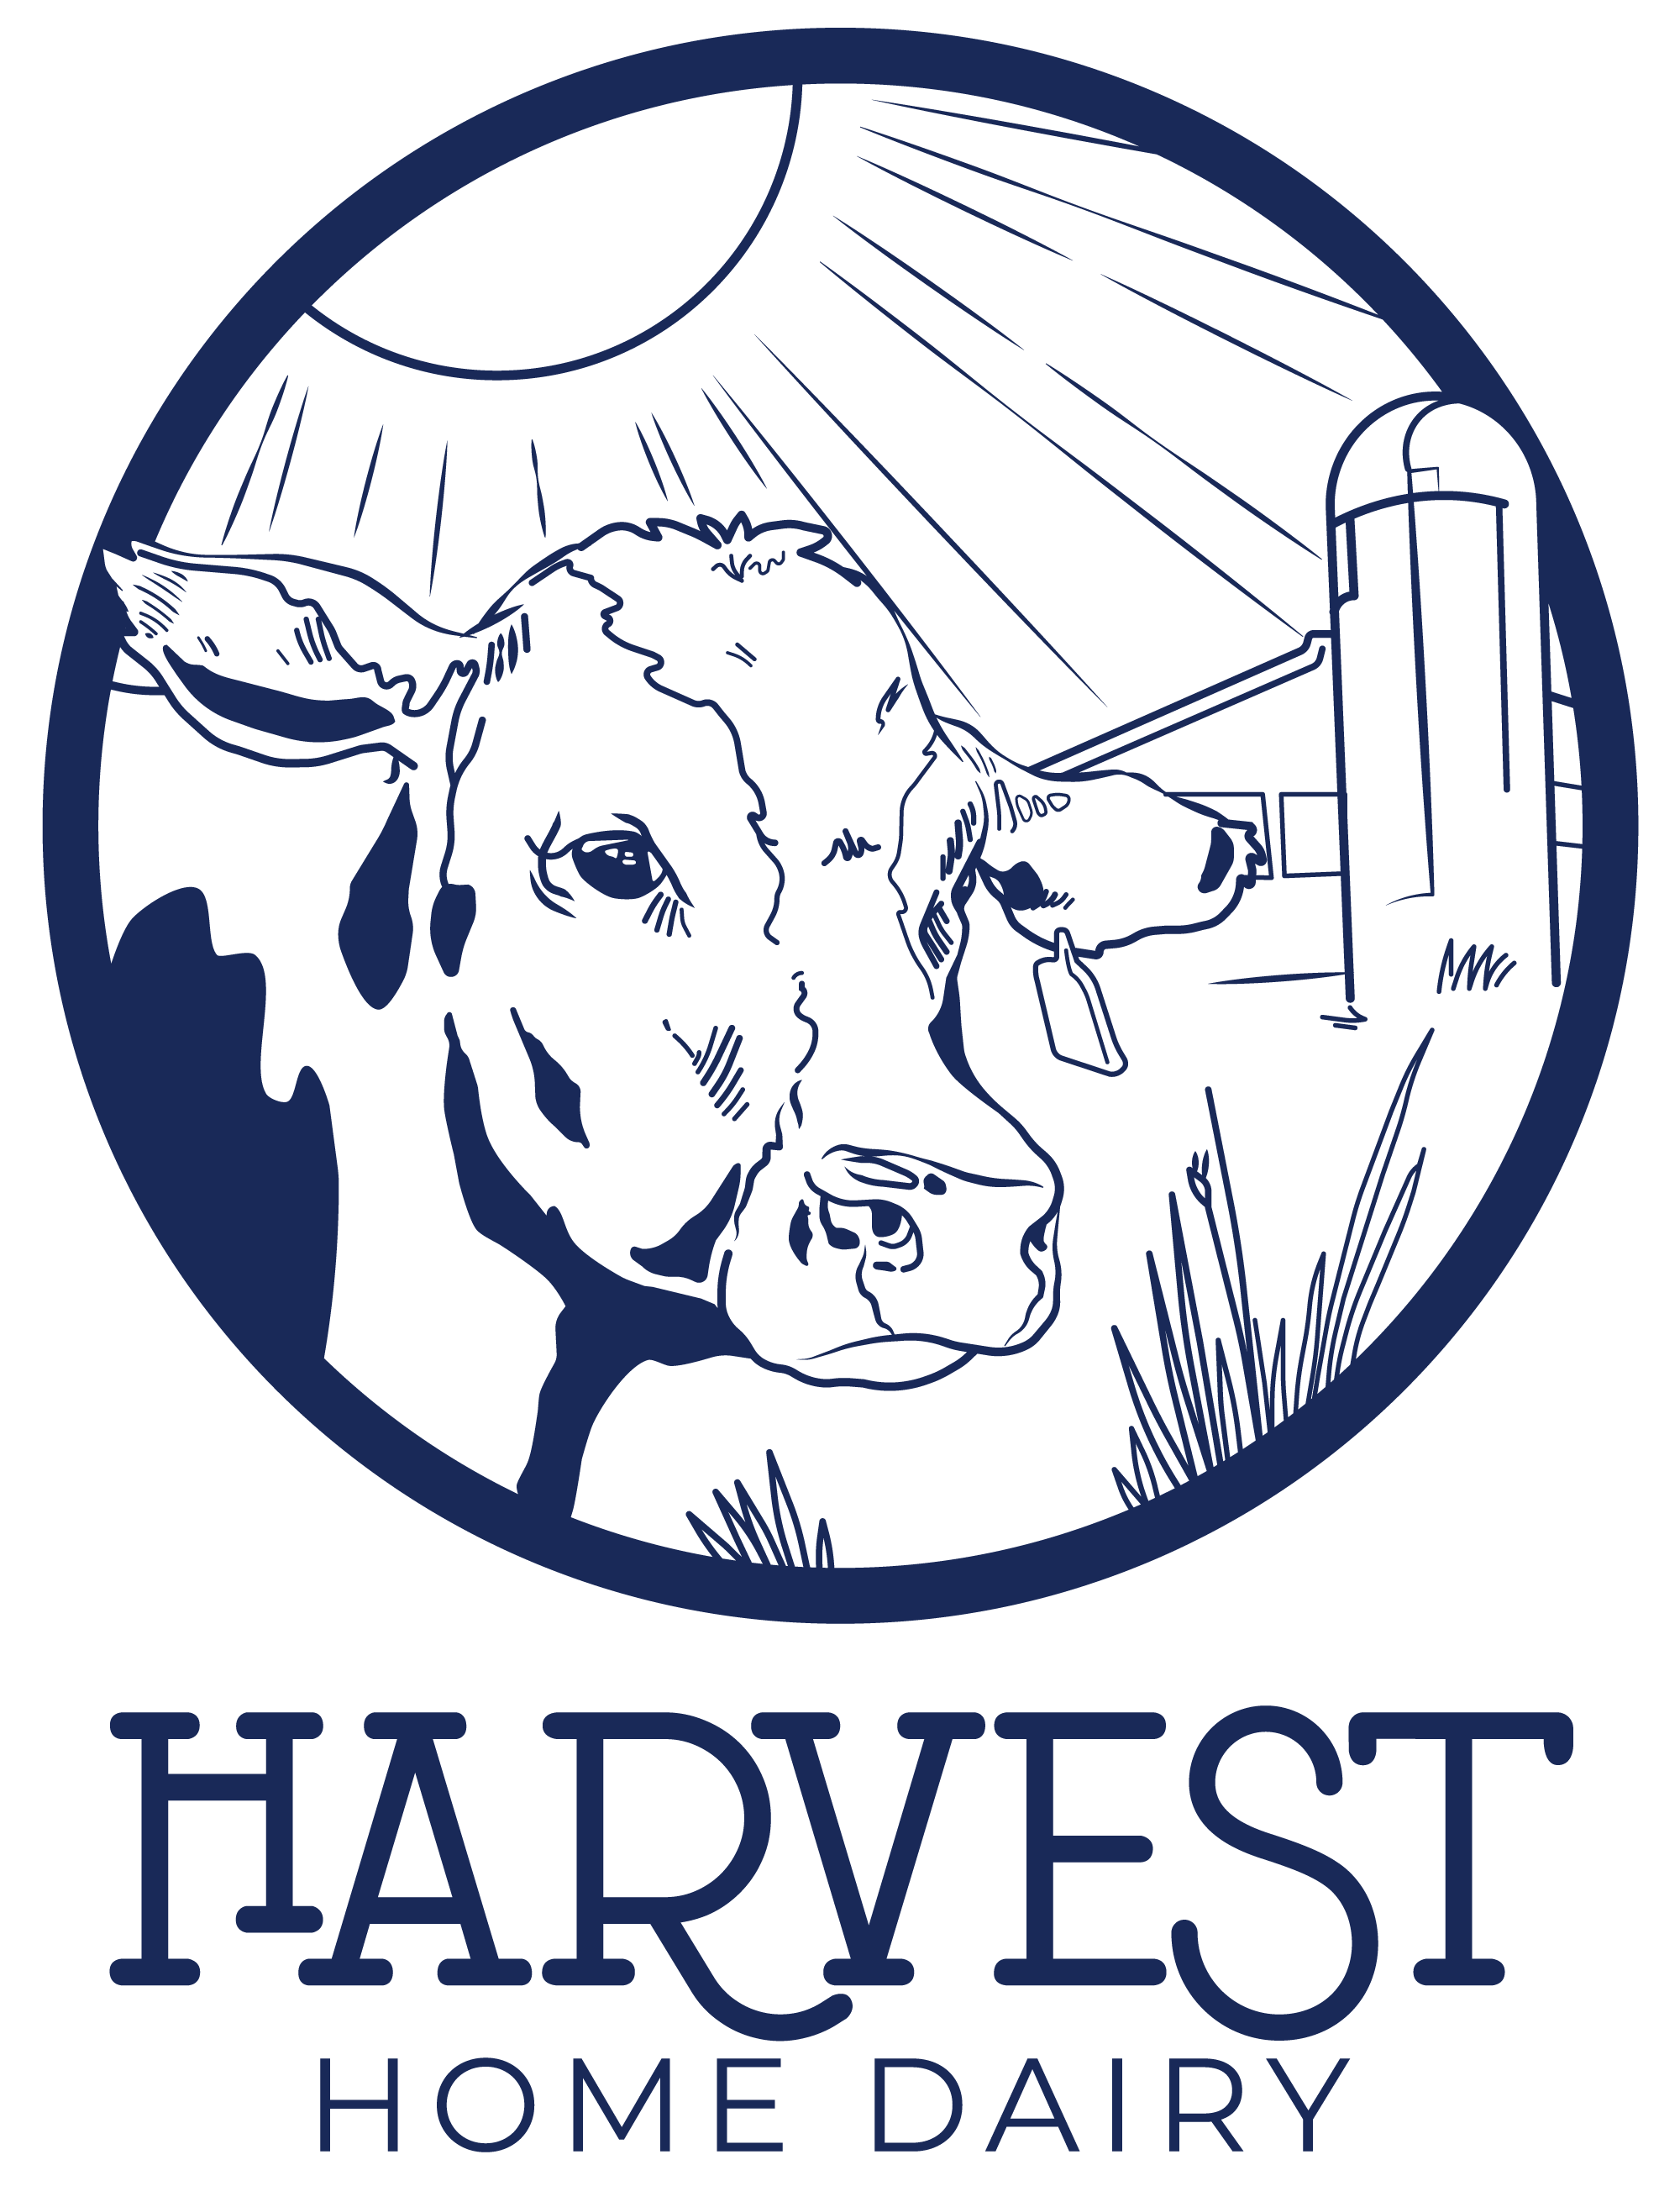 Logos should be simple, but sometimes you just gotta draw a cow -